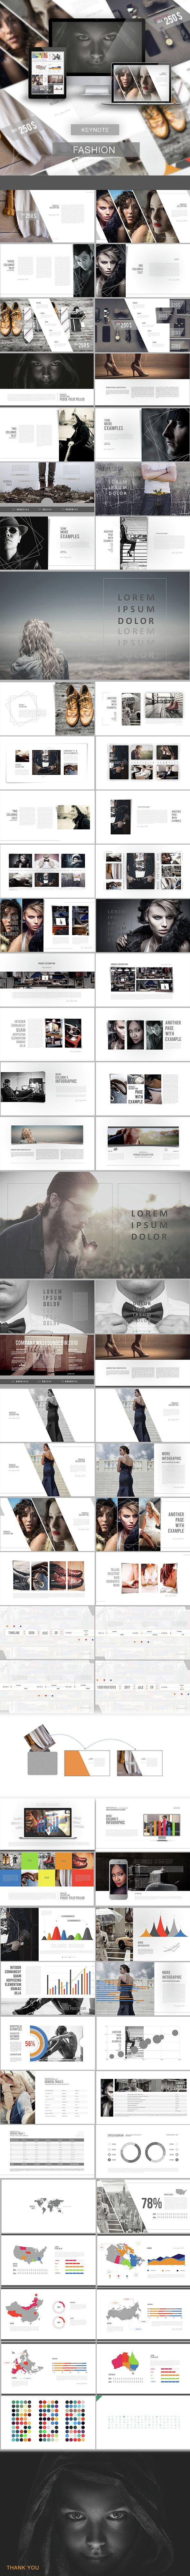 Fashion - Keynote Presentation Template. Download here: http://graphicriver.net/item/fashion/15077359?ref=ksioks